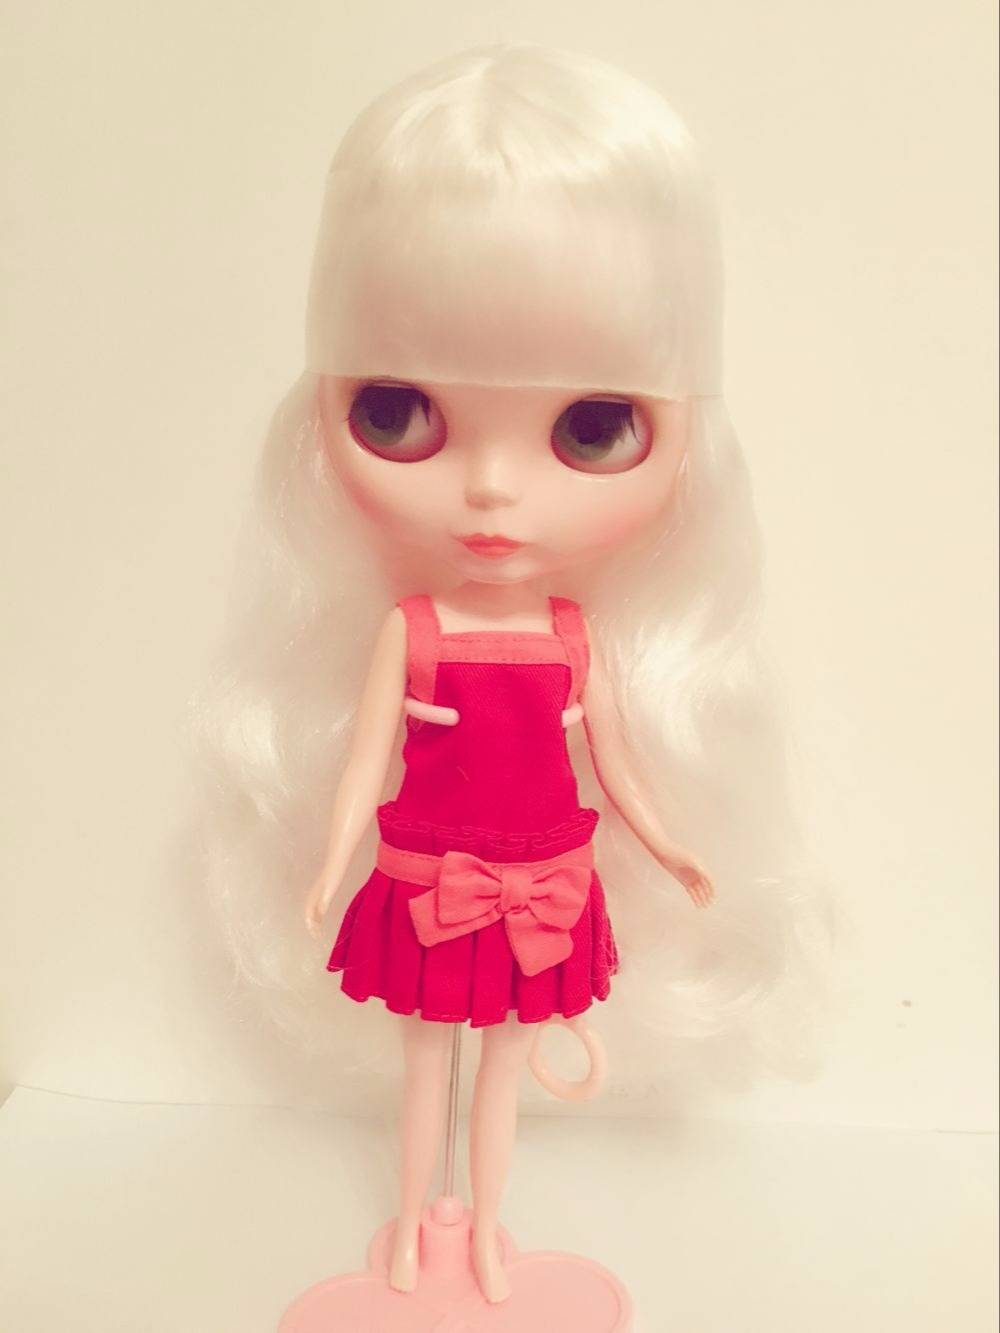 Toys & Hobbies Free Shipping Top Discount 4 Colors Big Eyes Diy Nude Blyth Doll Item No 18 Doll Limited Gift Special Price Cheap Offer Toy